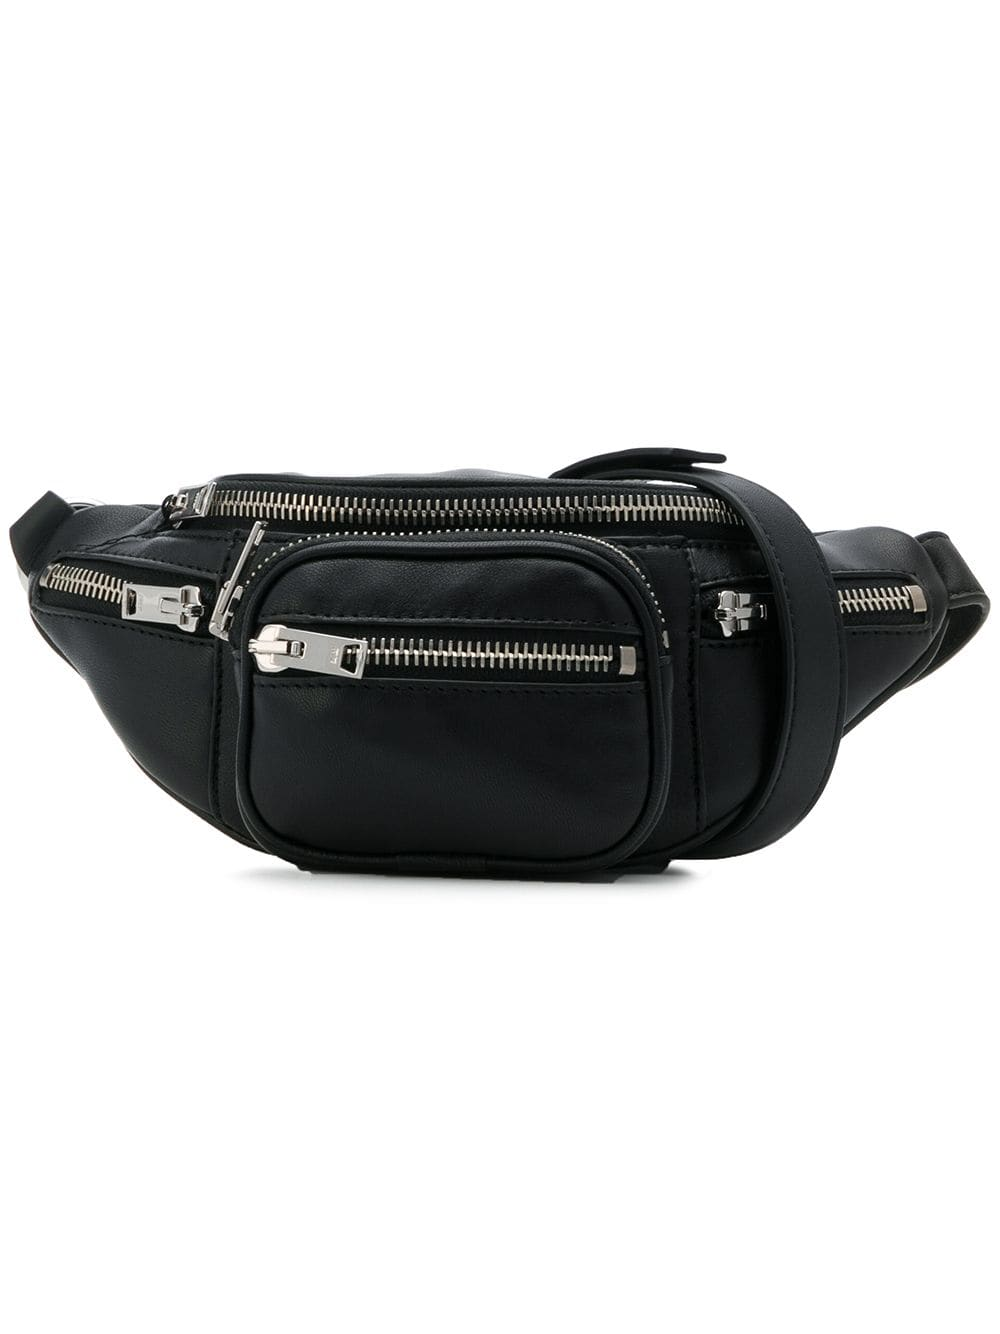 ALEXANDER WANG ATTICA MINI FANNY PACK WITH METAL CHAIN